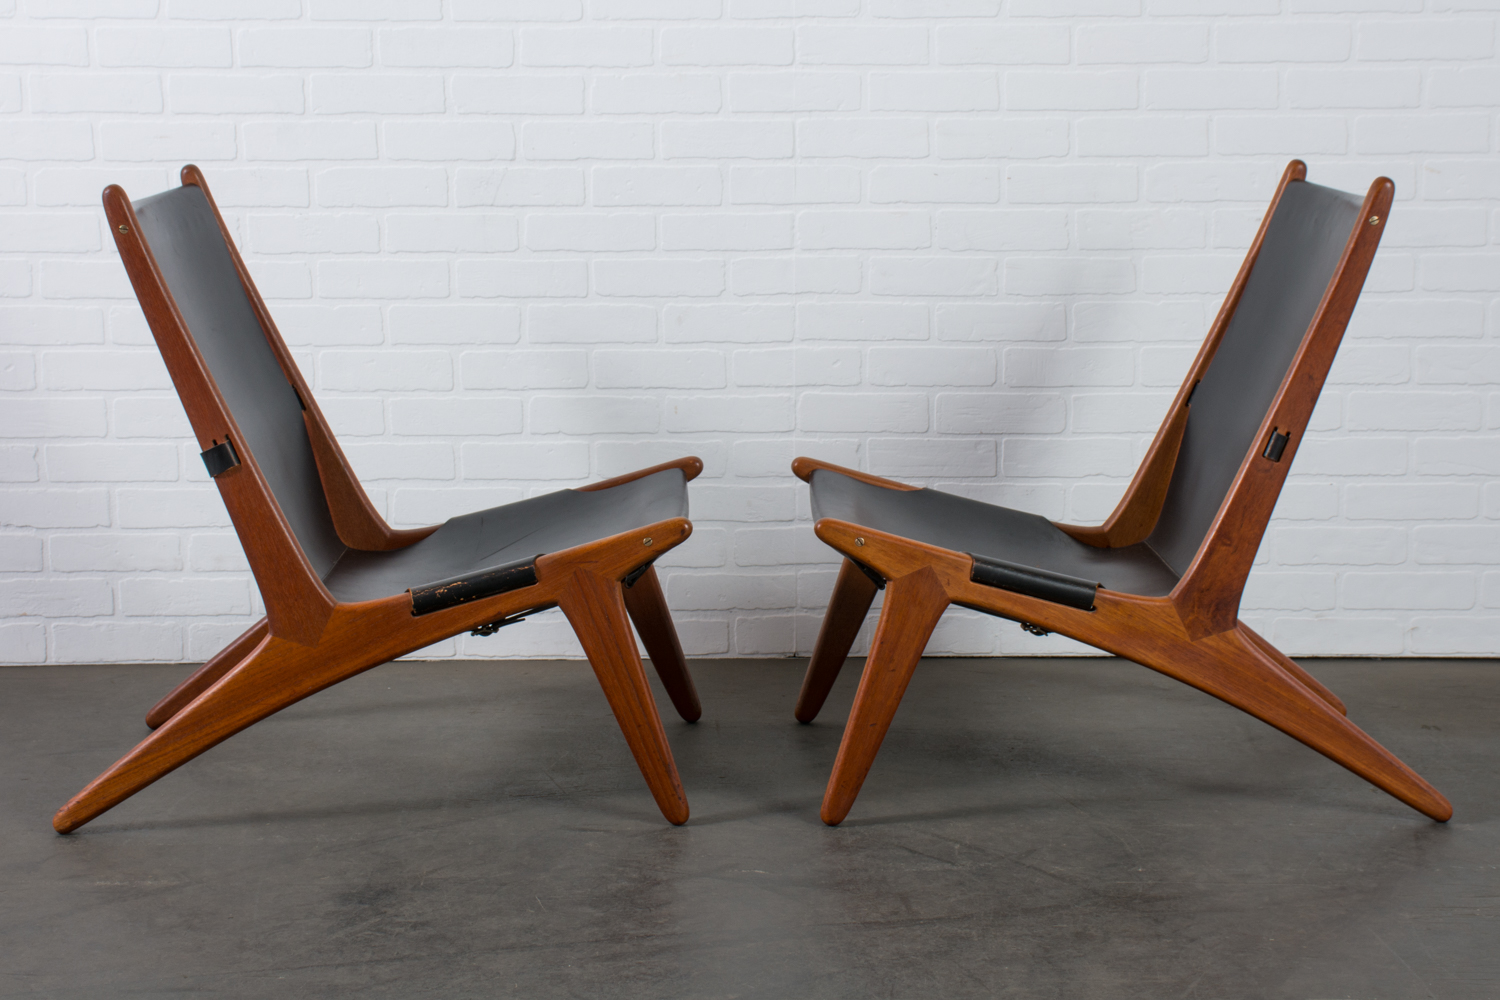 Swedish Mid Century Furniture Pair Of Hunting Chairs By Uno Östen Kristiansson For Luxus Sweden 1954